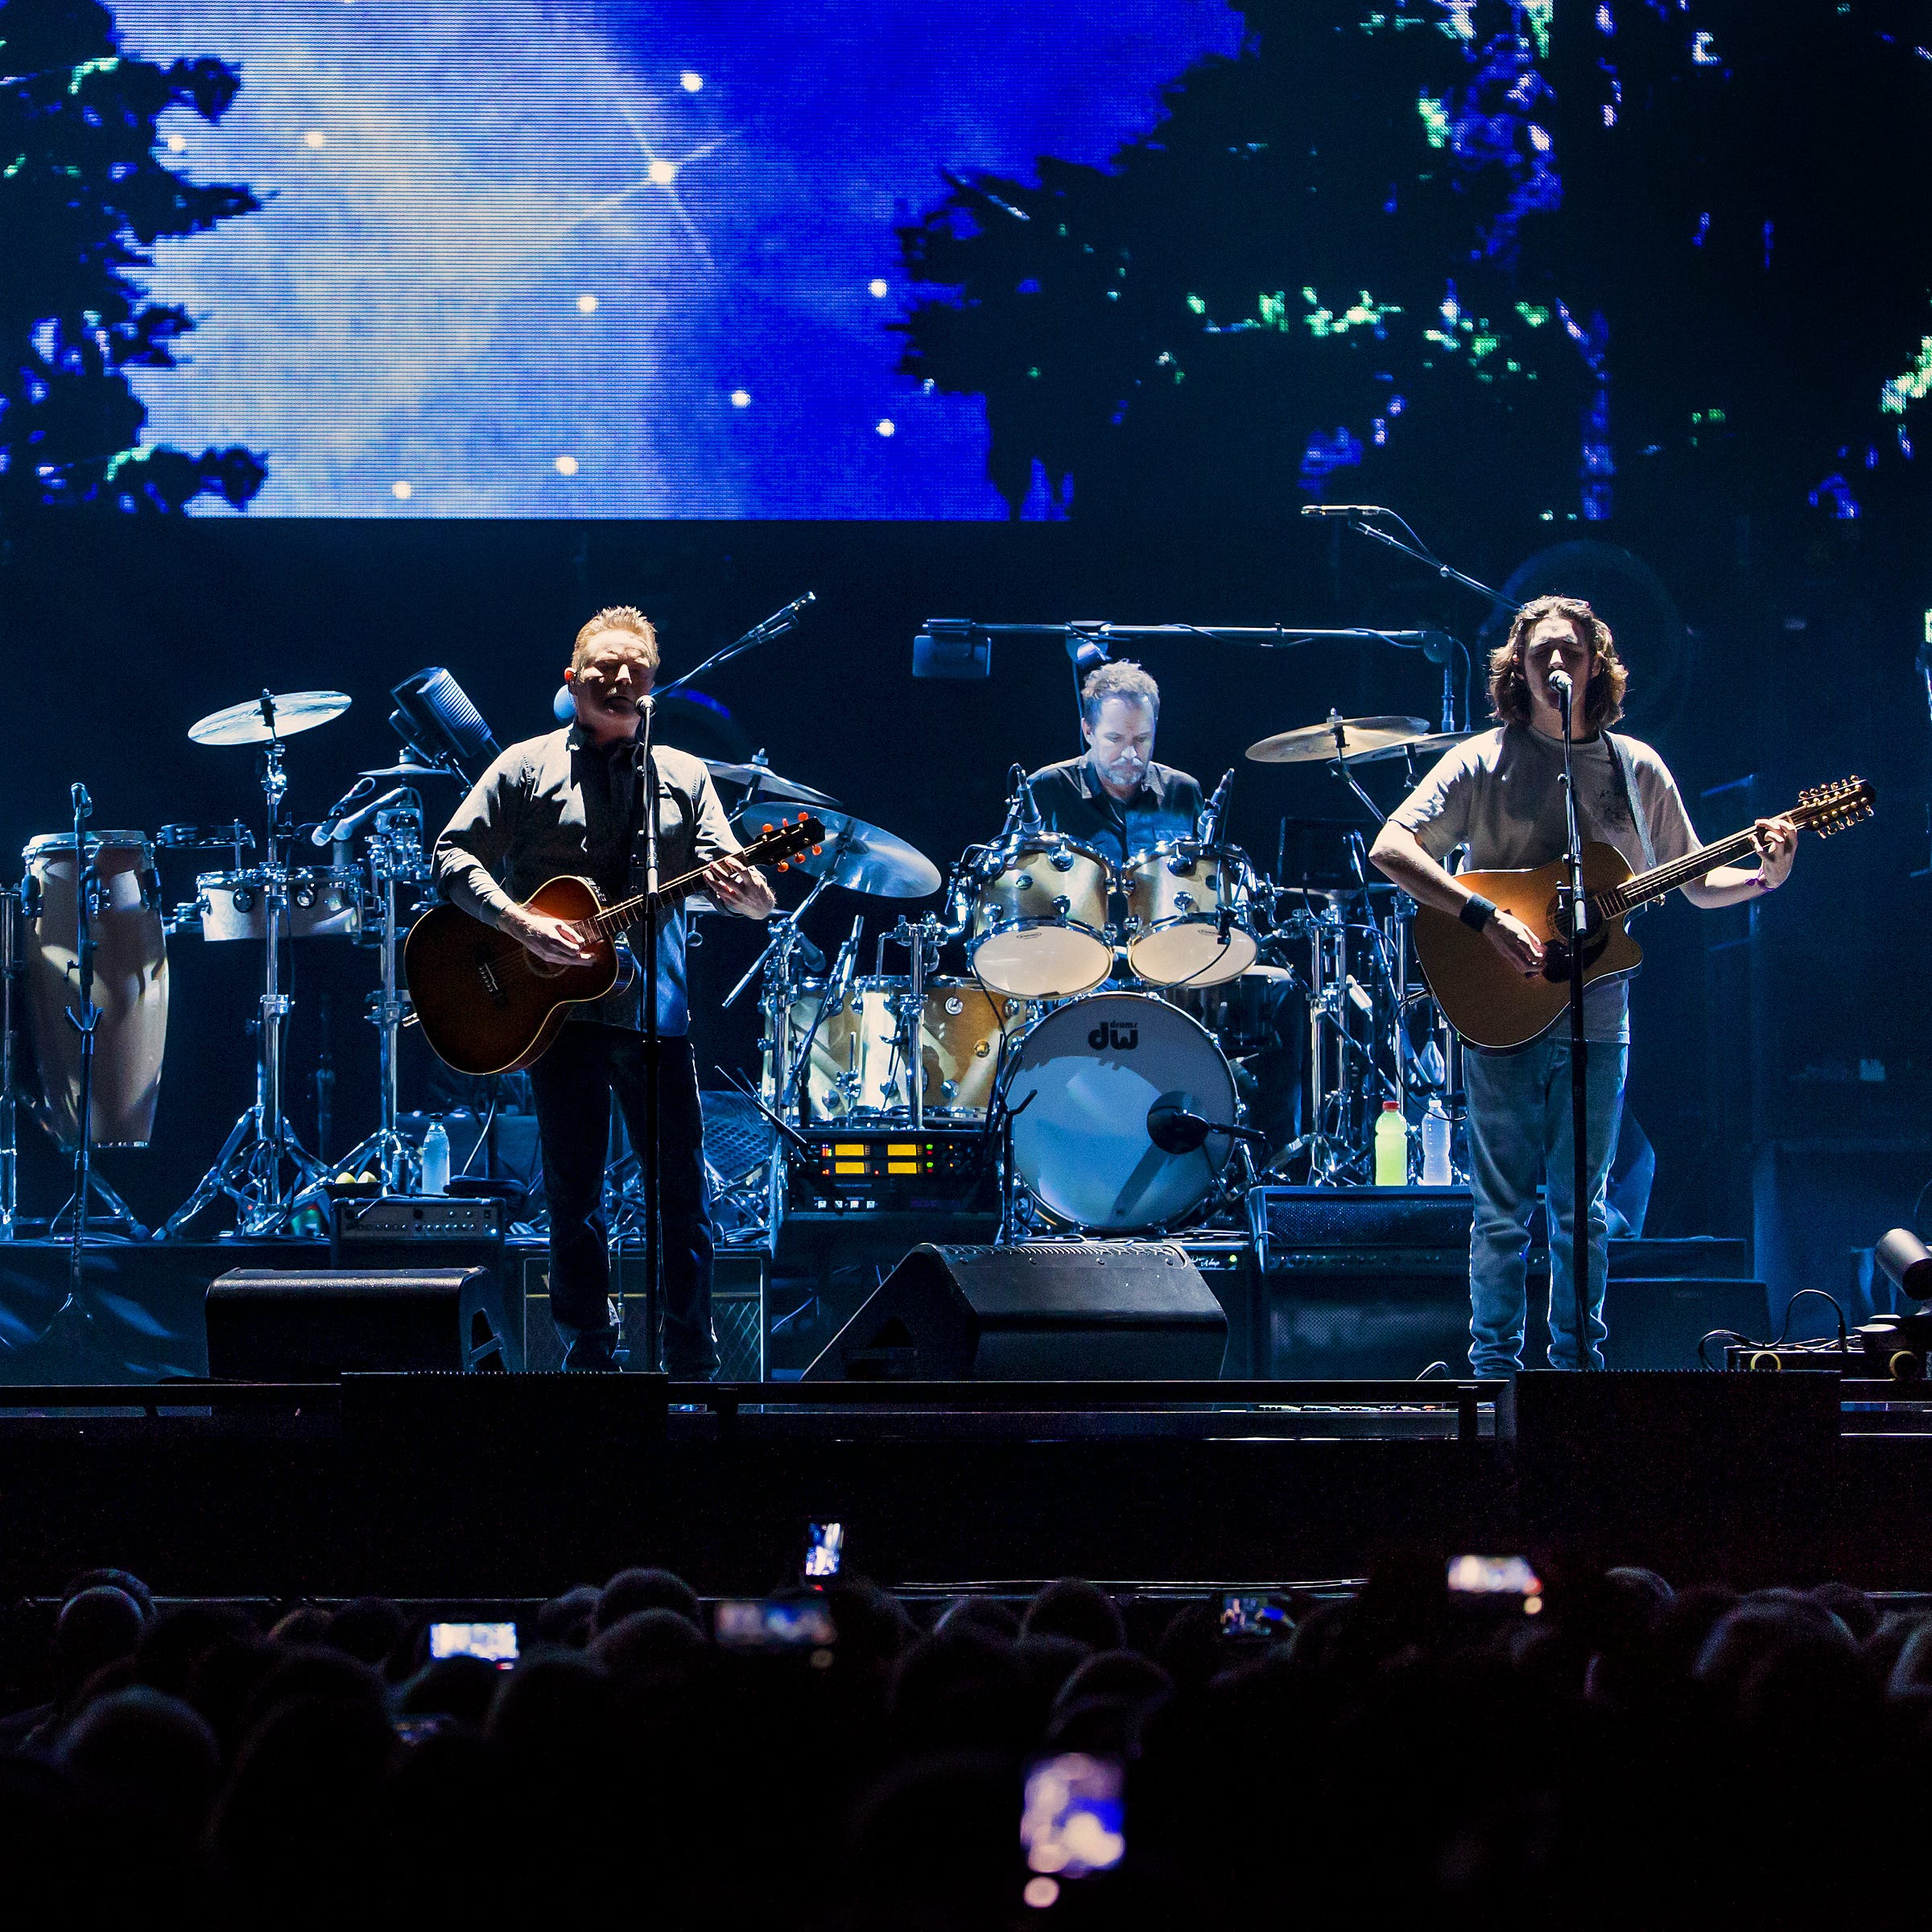 The Eagles tour: setlist, photos review from New York City